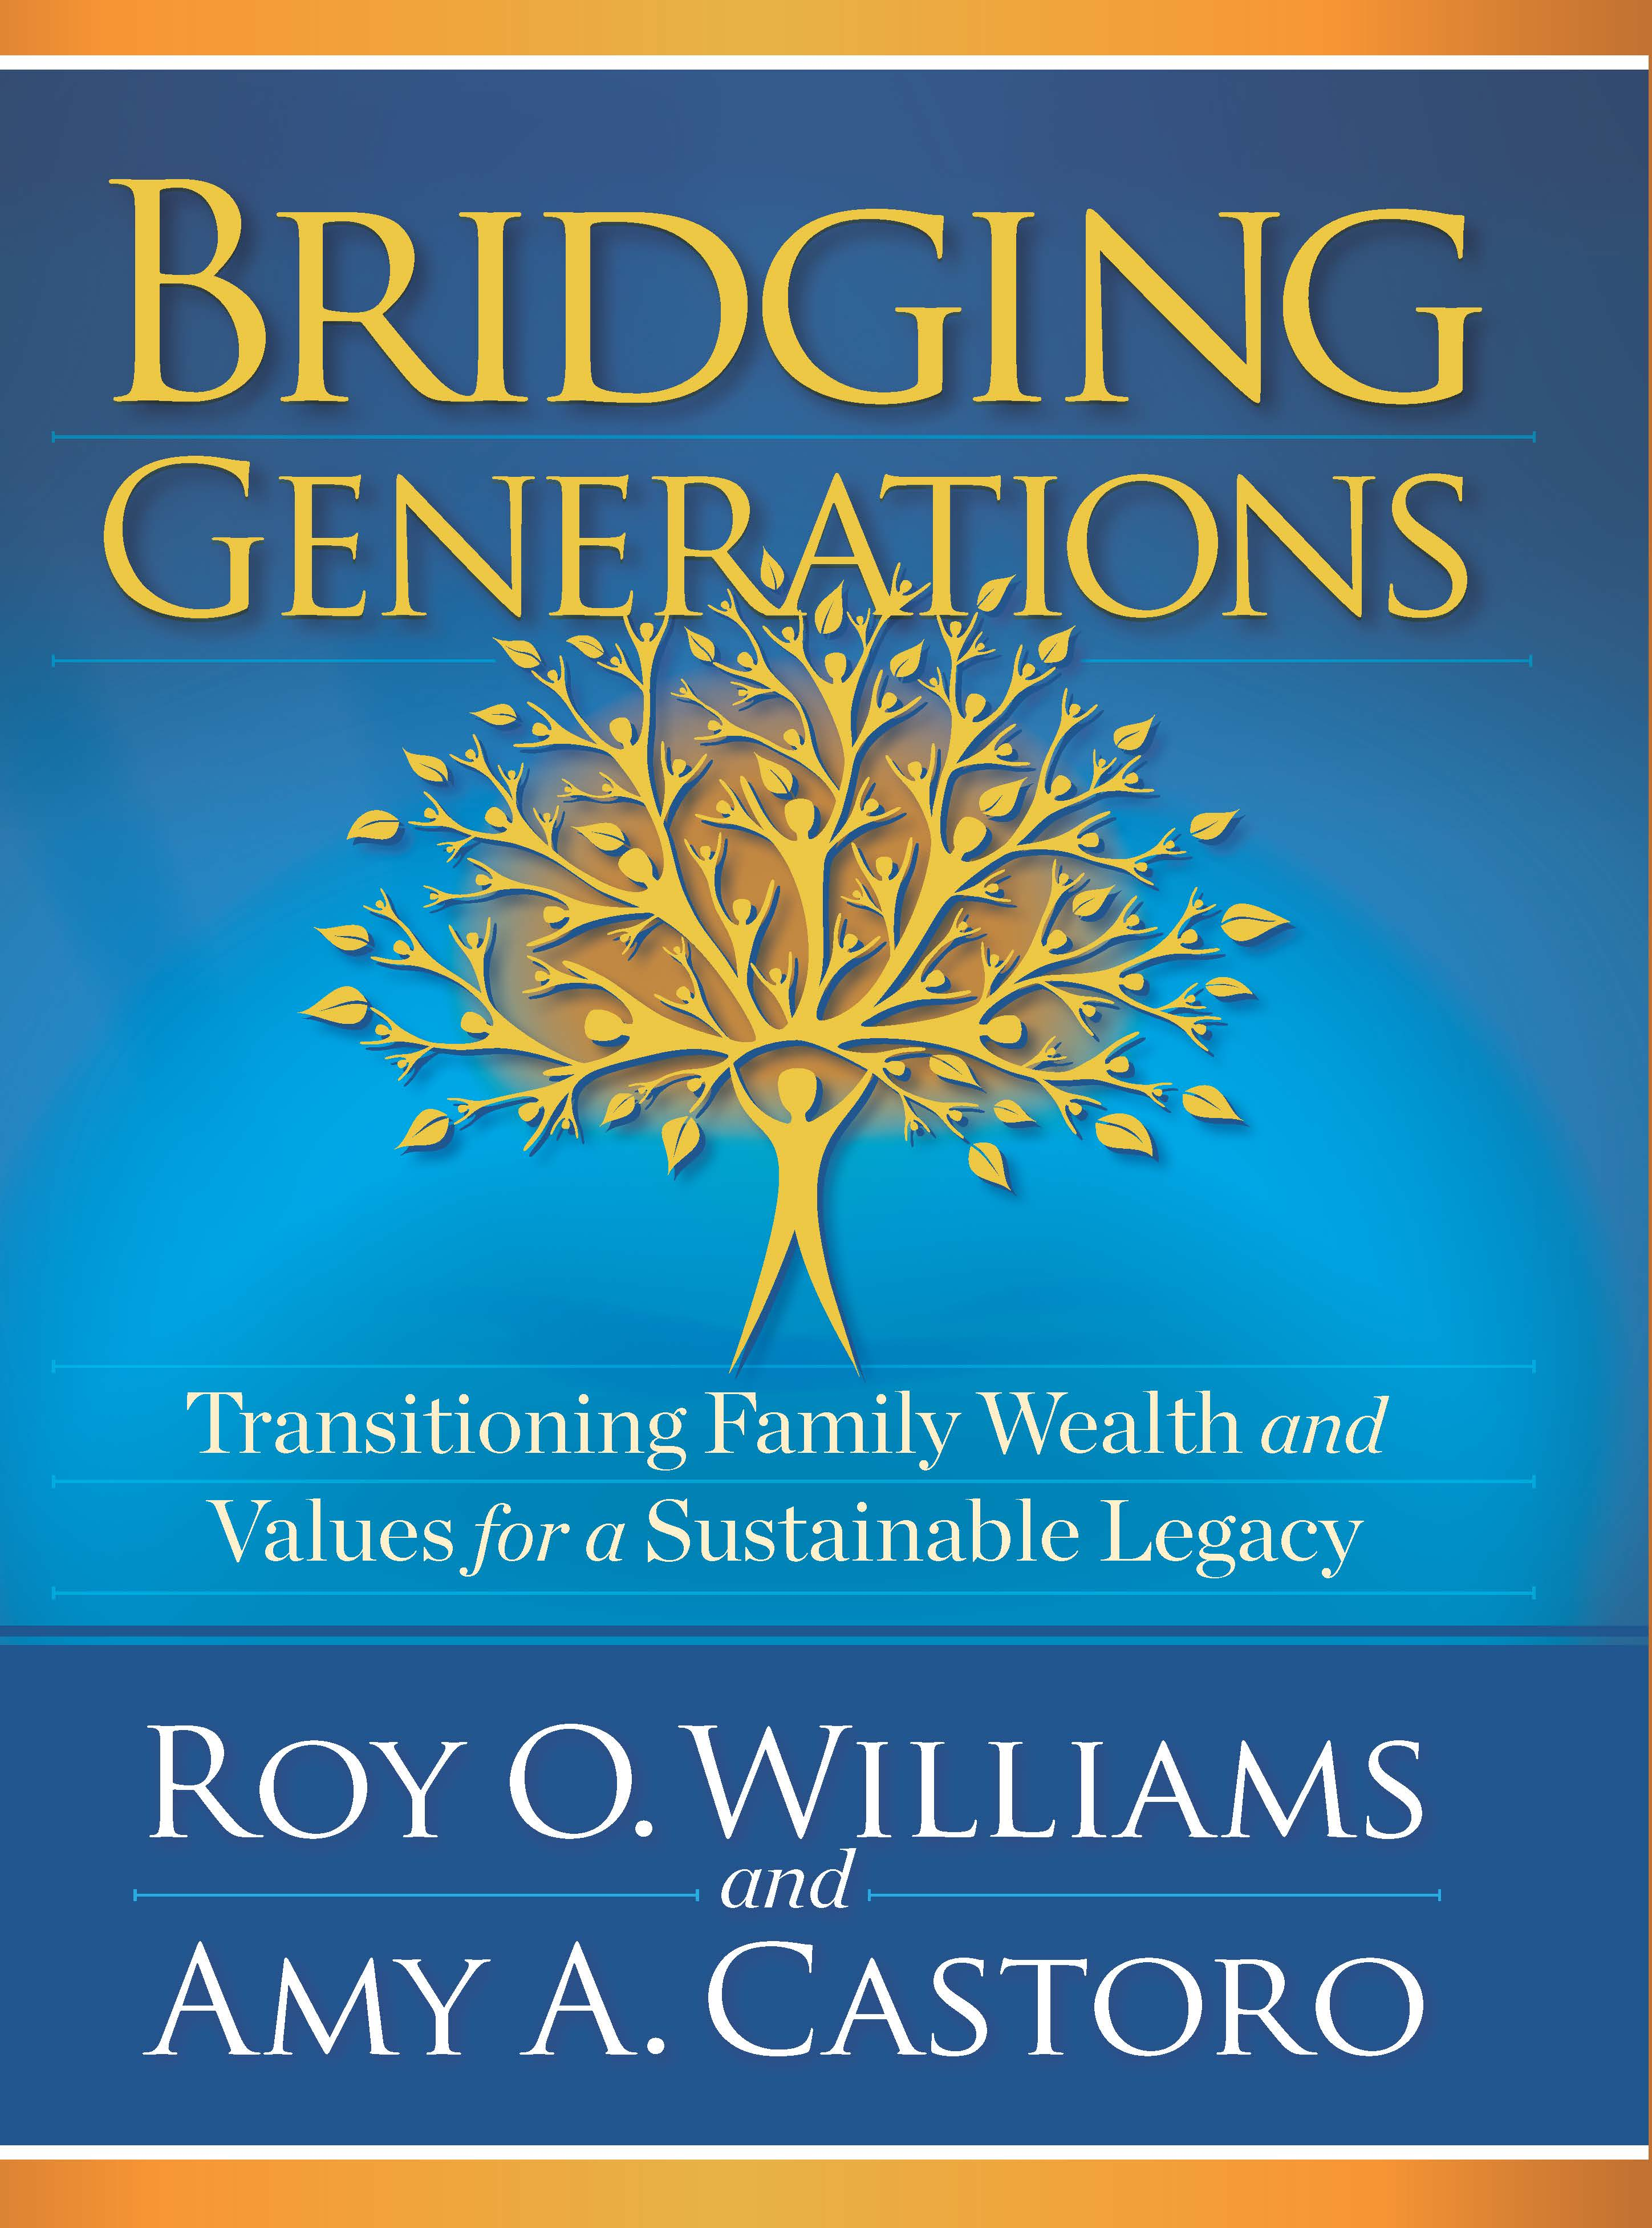 Bridging Generations: Transitioning Family Wealth & Values for a Sustainable Legacy